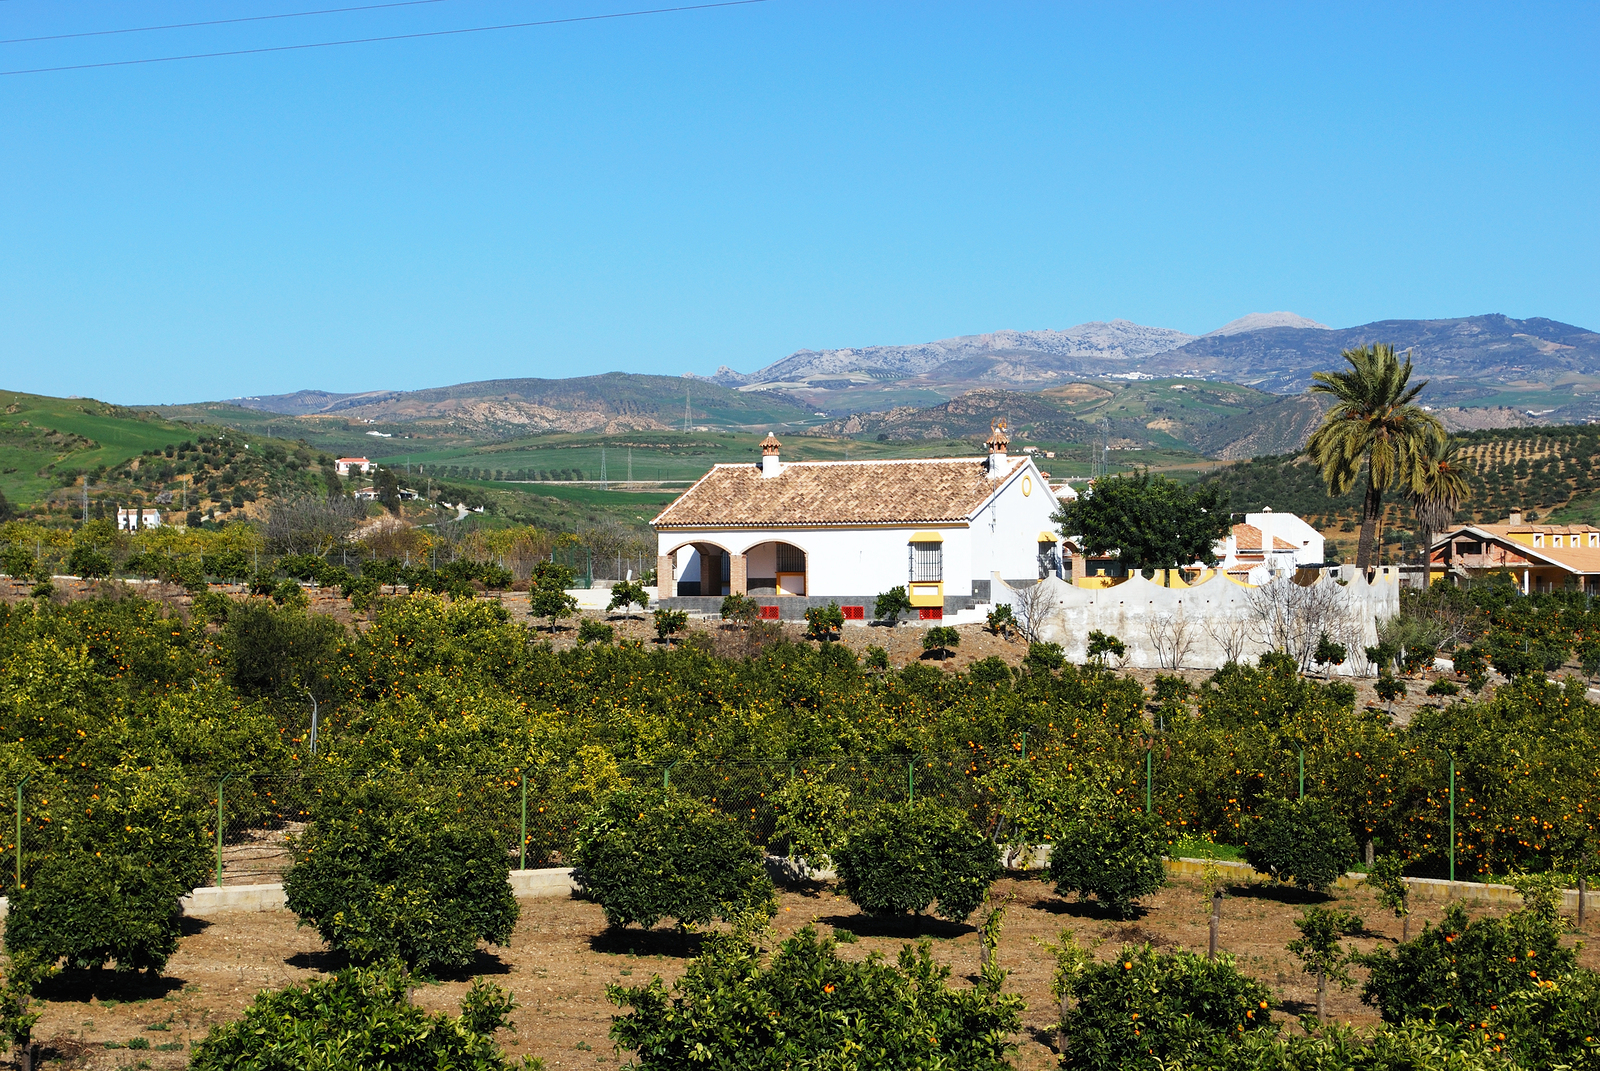 Pizarra property and living Orange grove and farm, Andalusia, Spain.